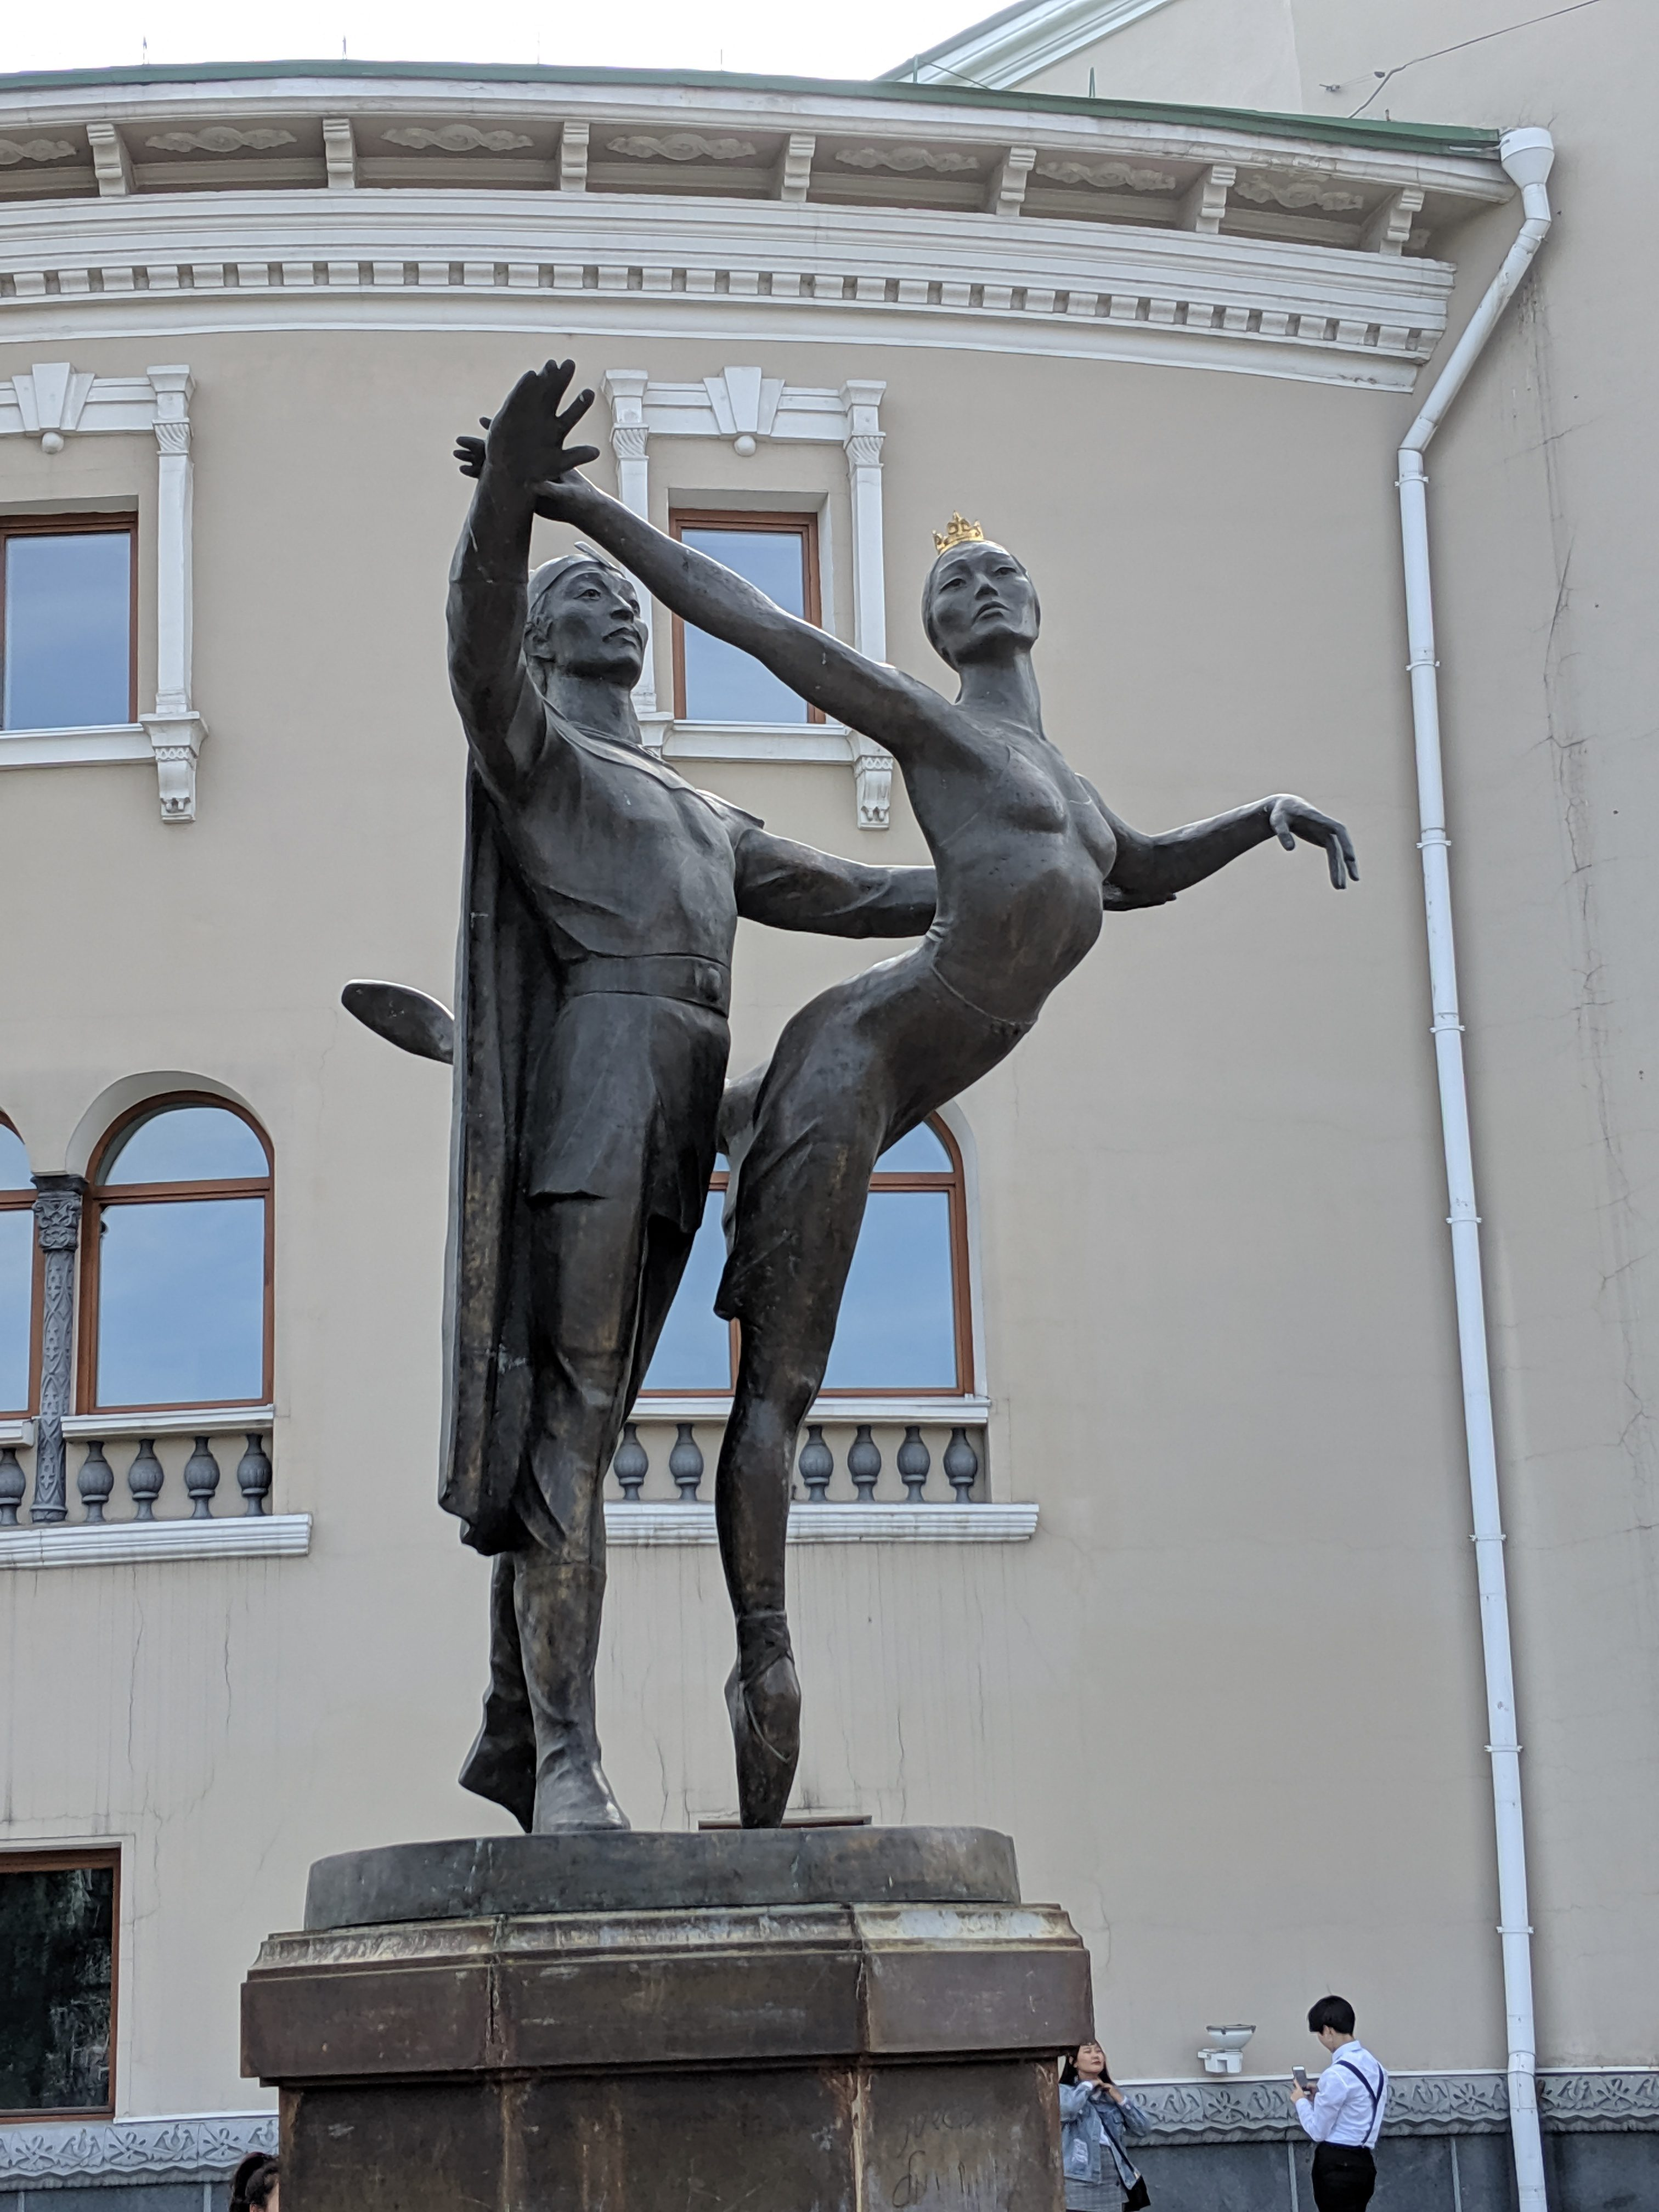 Dancers statue outside the Buryat State Academic Opera and Ballet Theatre